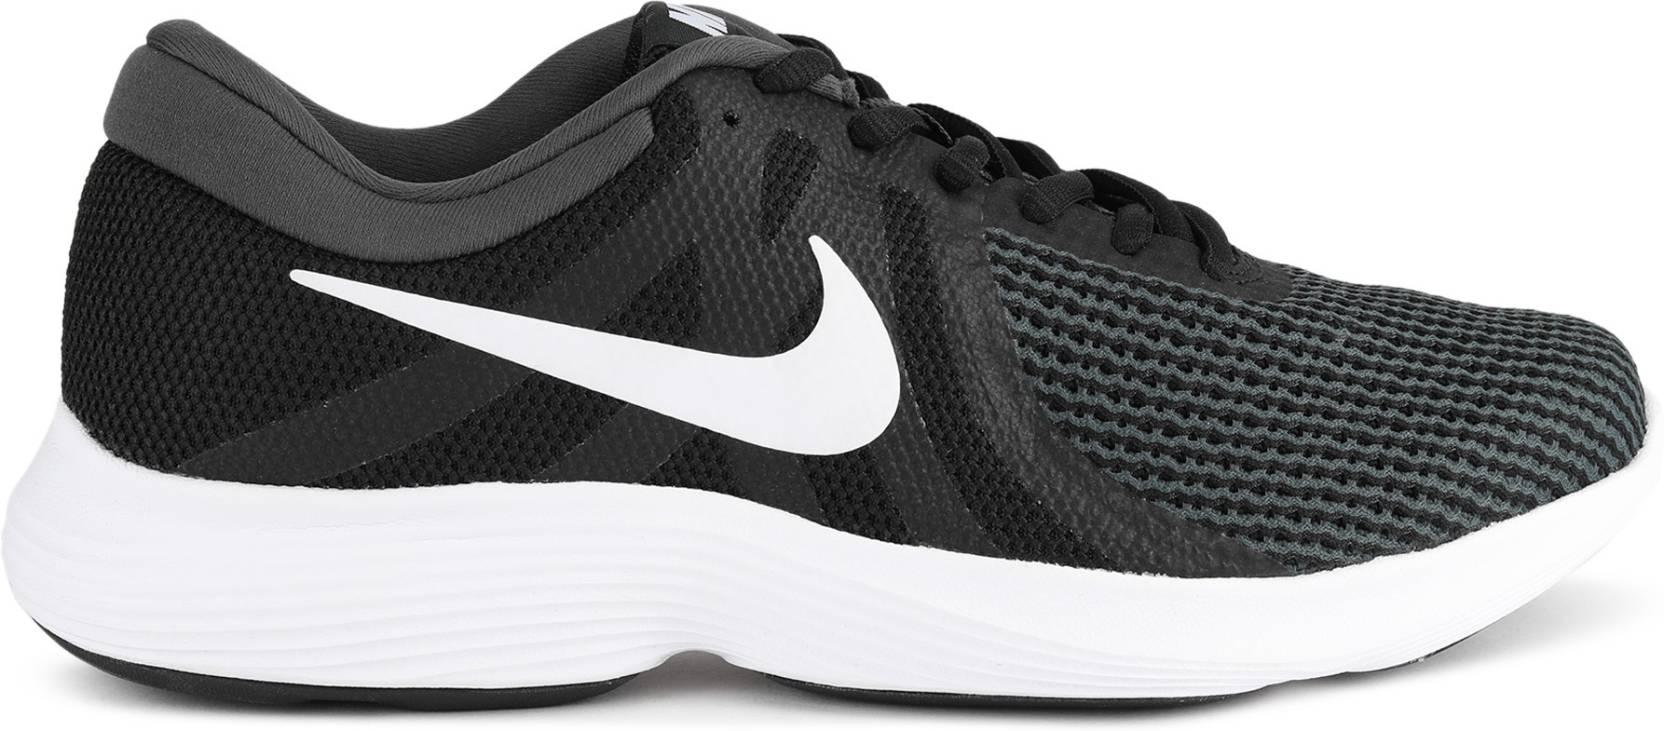 Nike Shoes Price List in India on 28